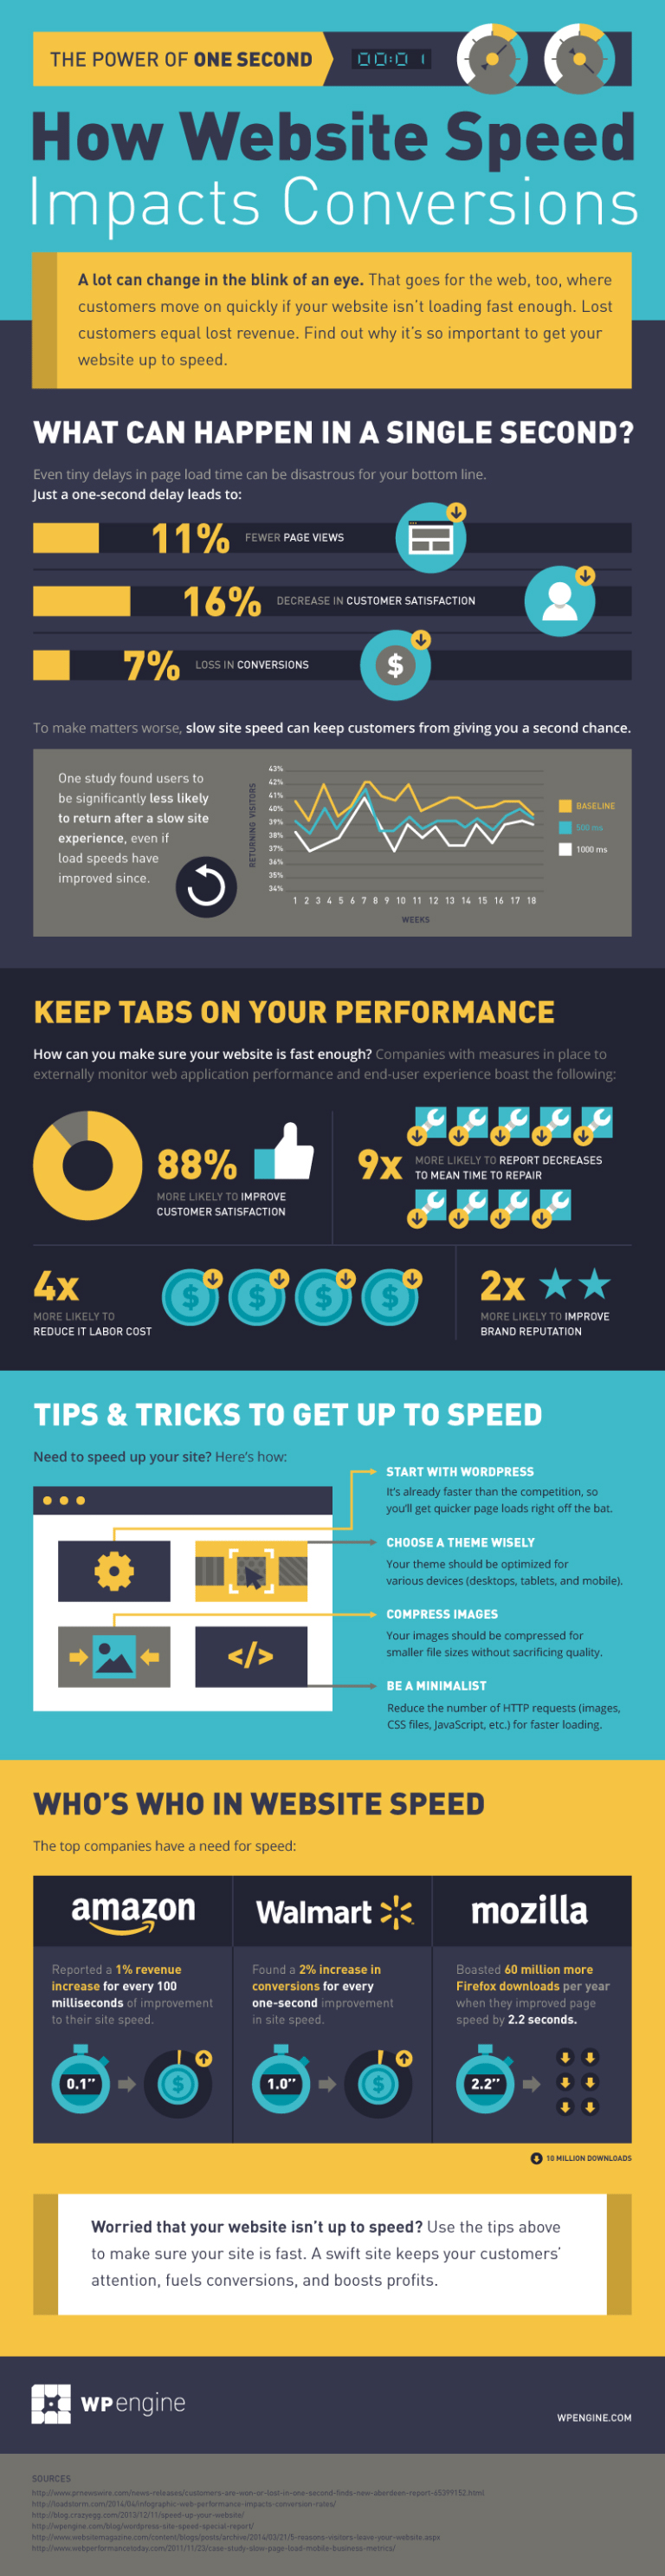 Top Stats On How Website Speed Impacts Your Conversions